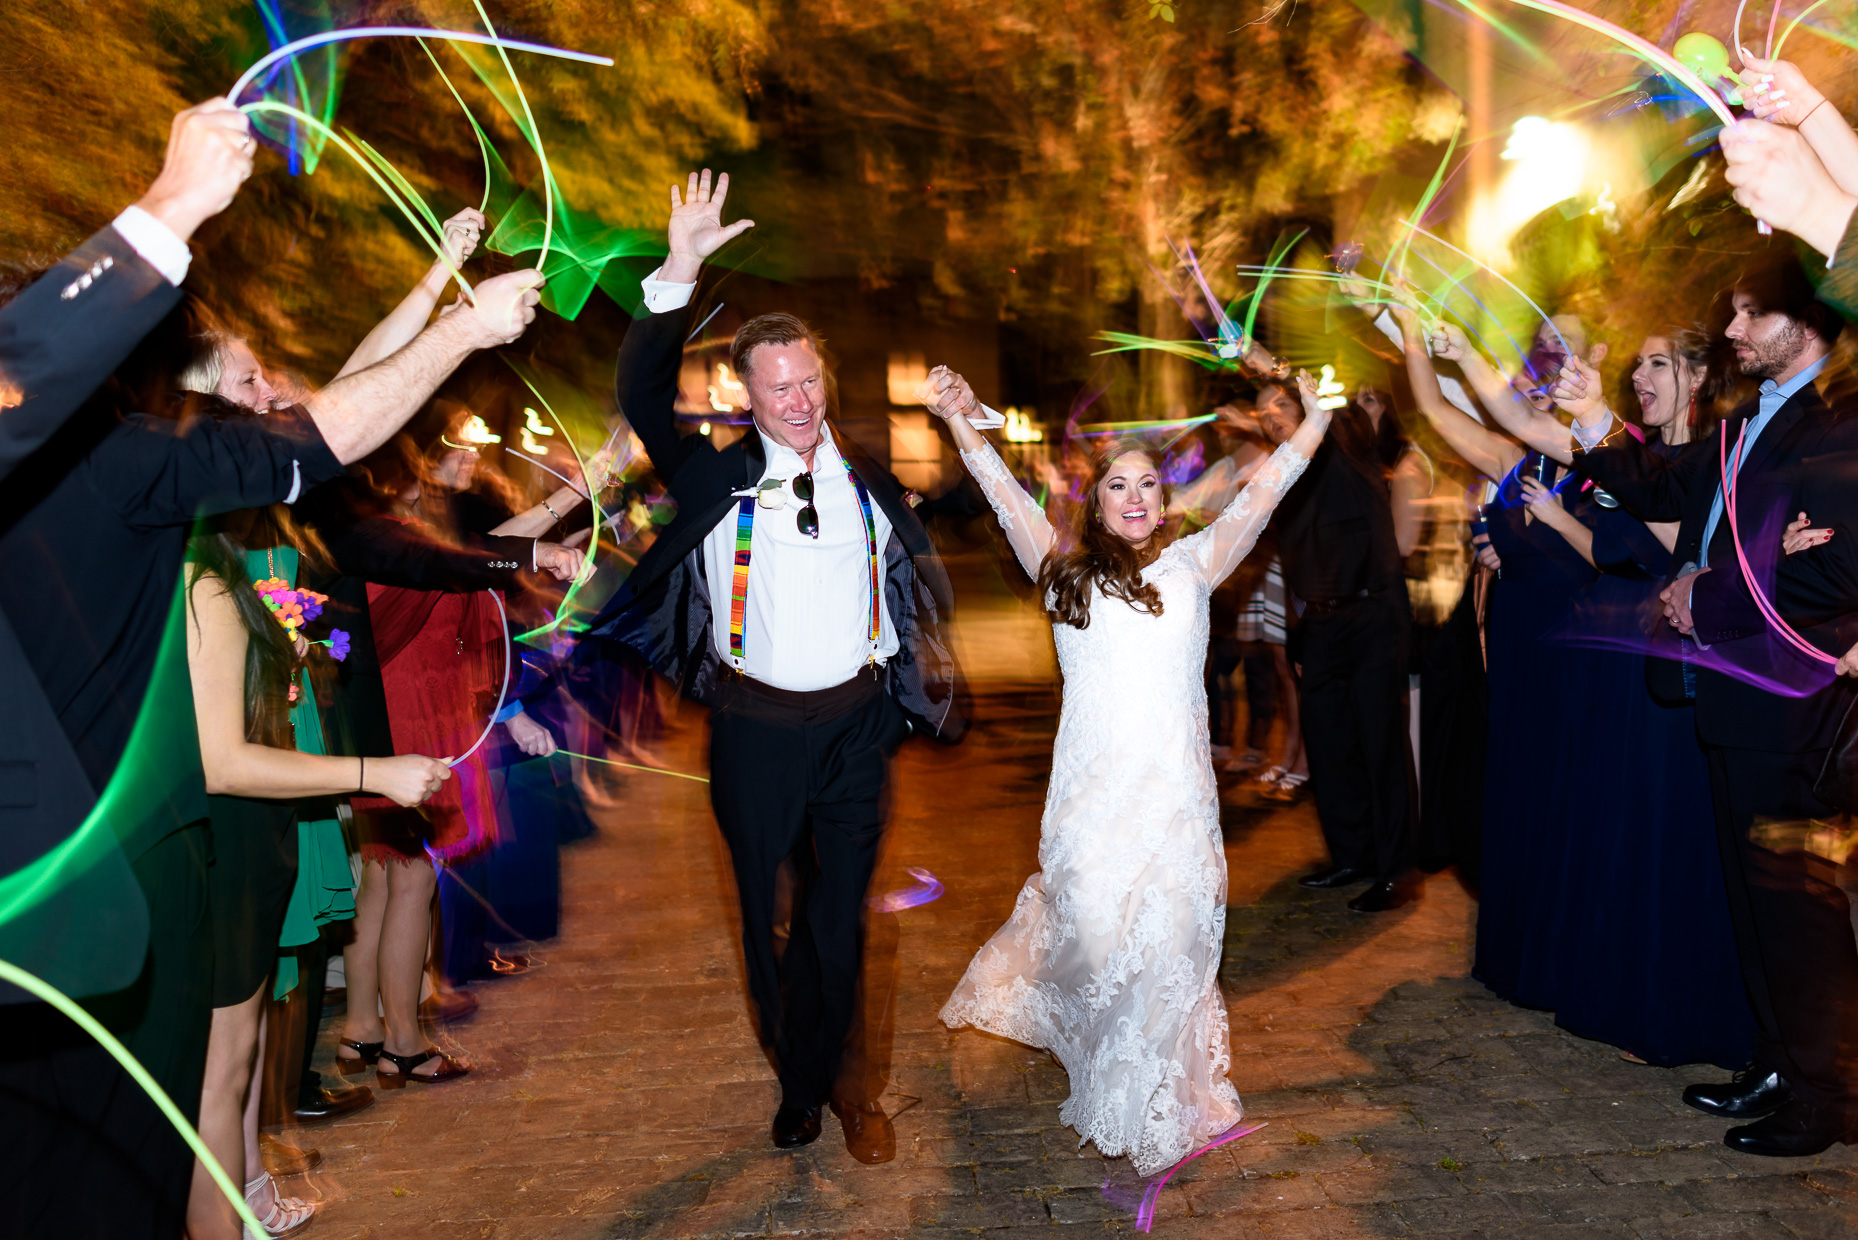 Austin-Wedding-Photographer-zaza-gardens-glow-stick-exit-san-antonio